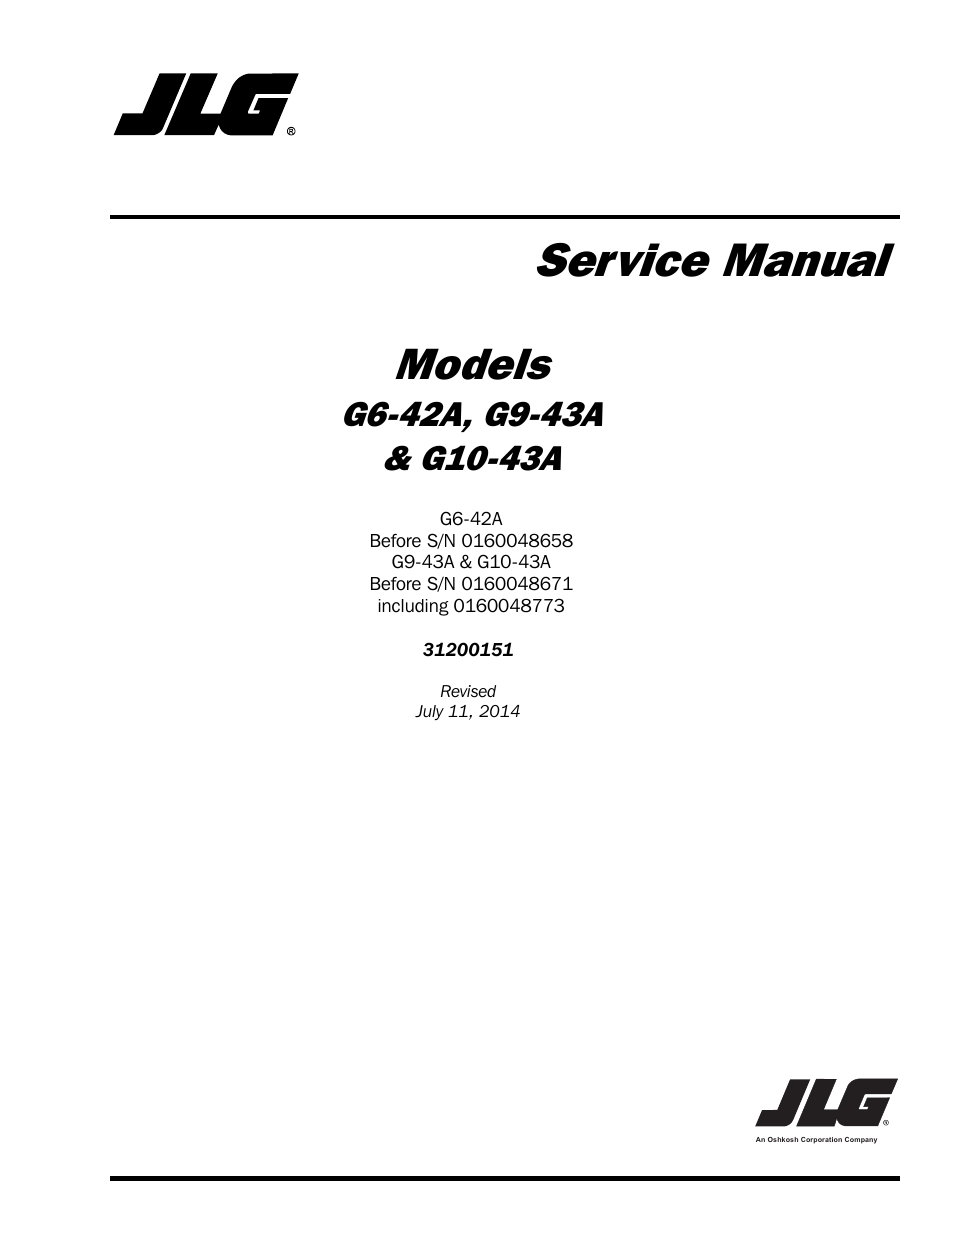 jlg g6-42a service manual user manual | 246 pages | also for: g10-43a  service manual, g9-43a service manual